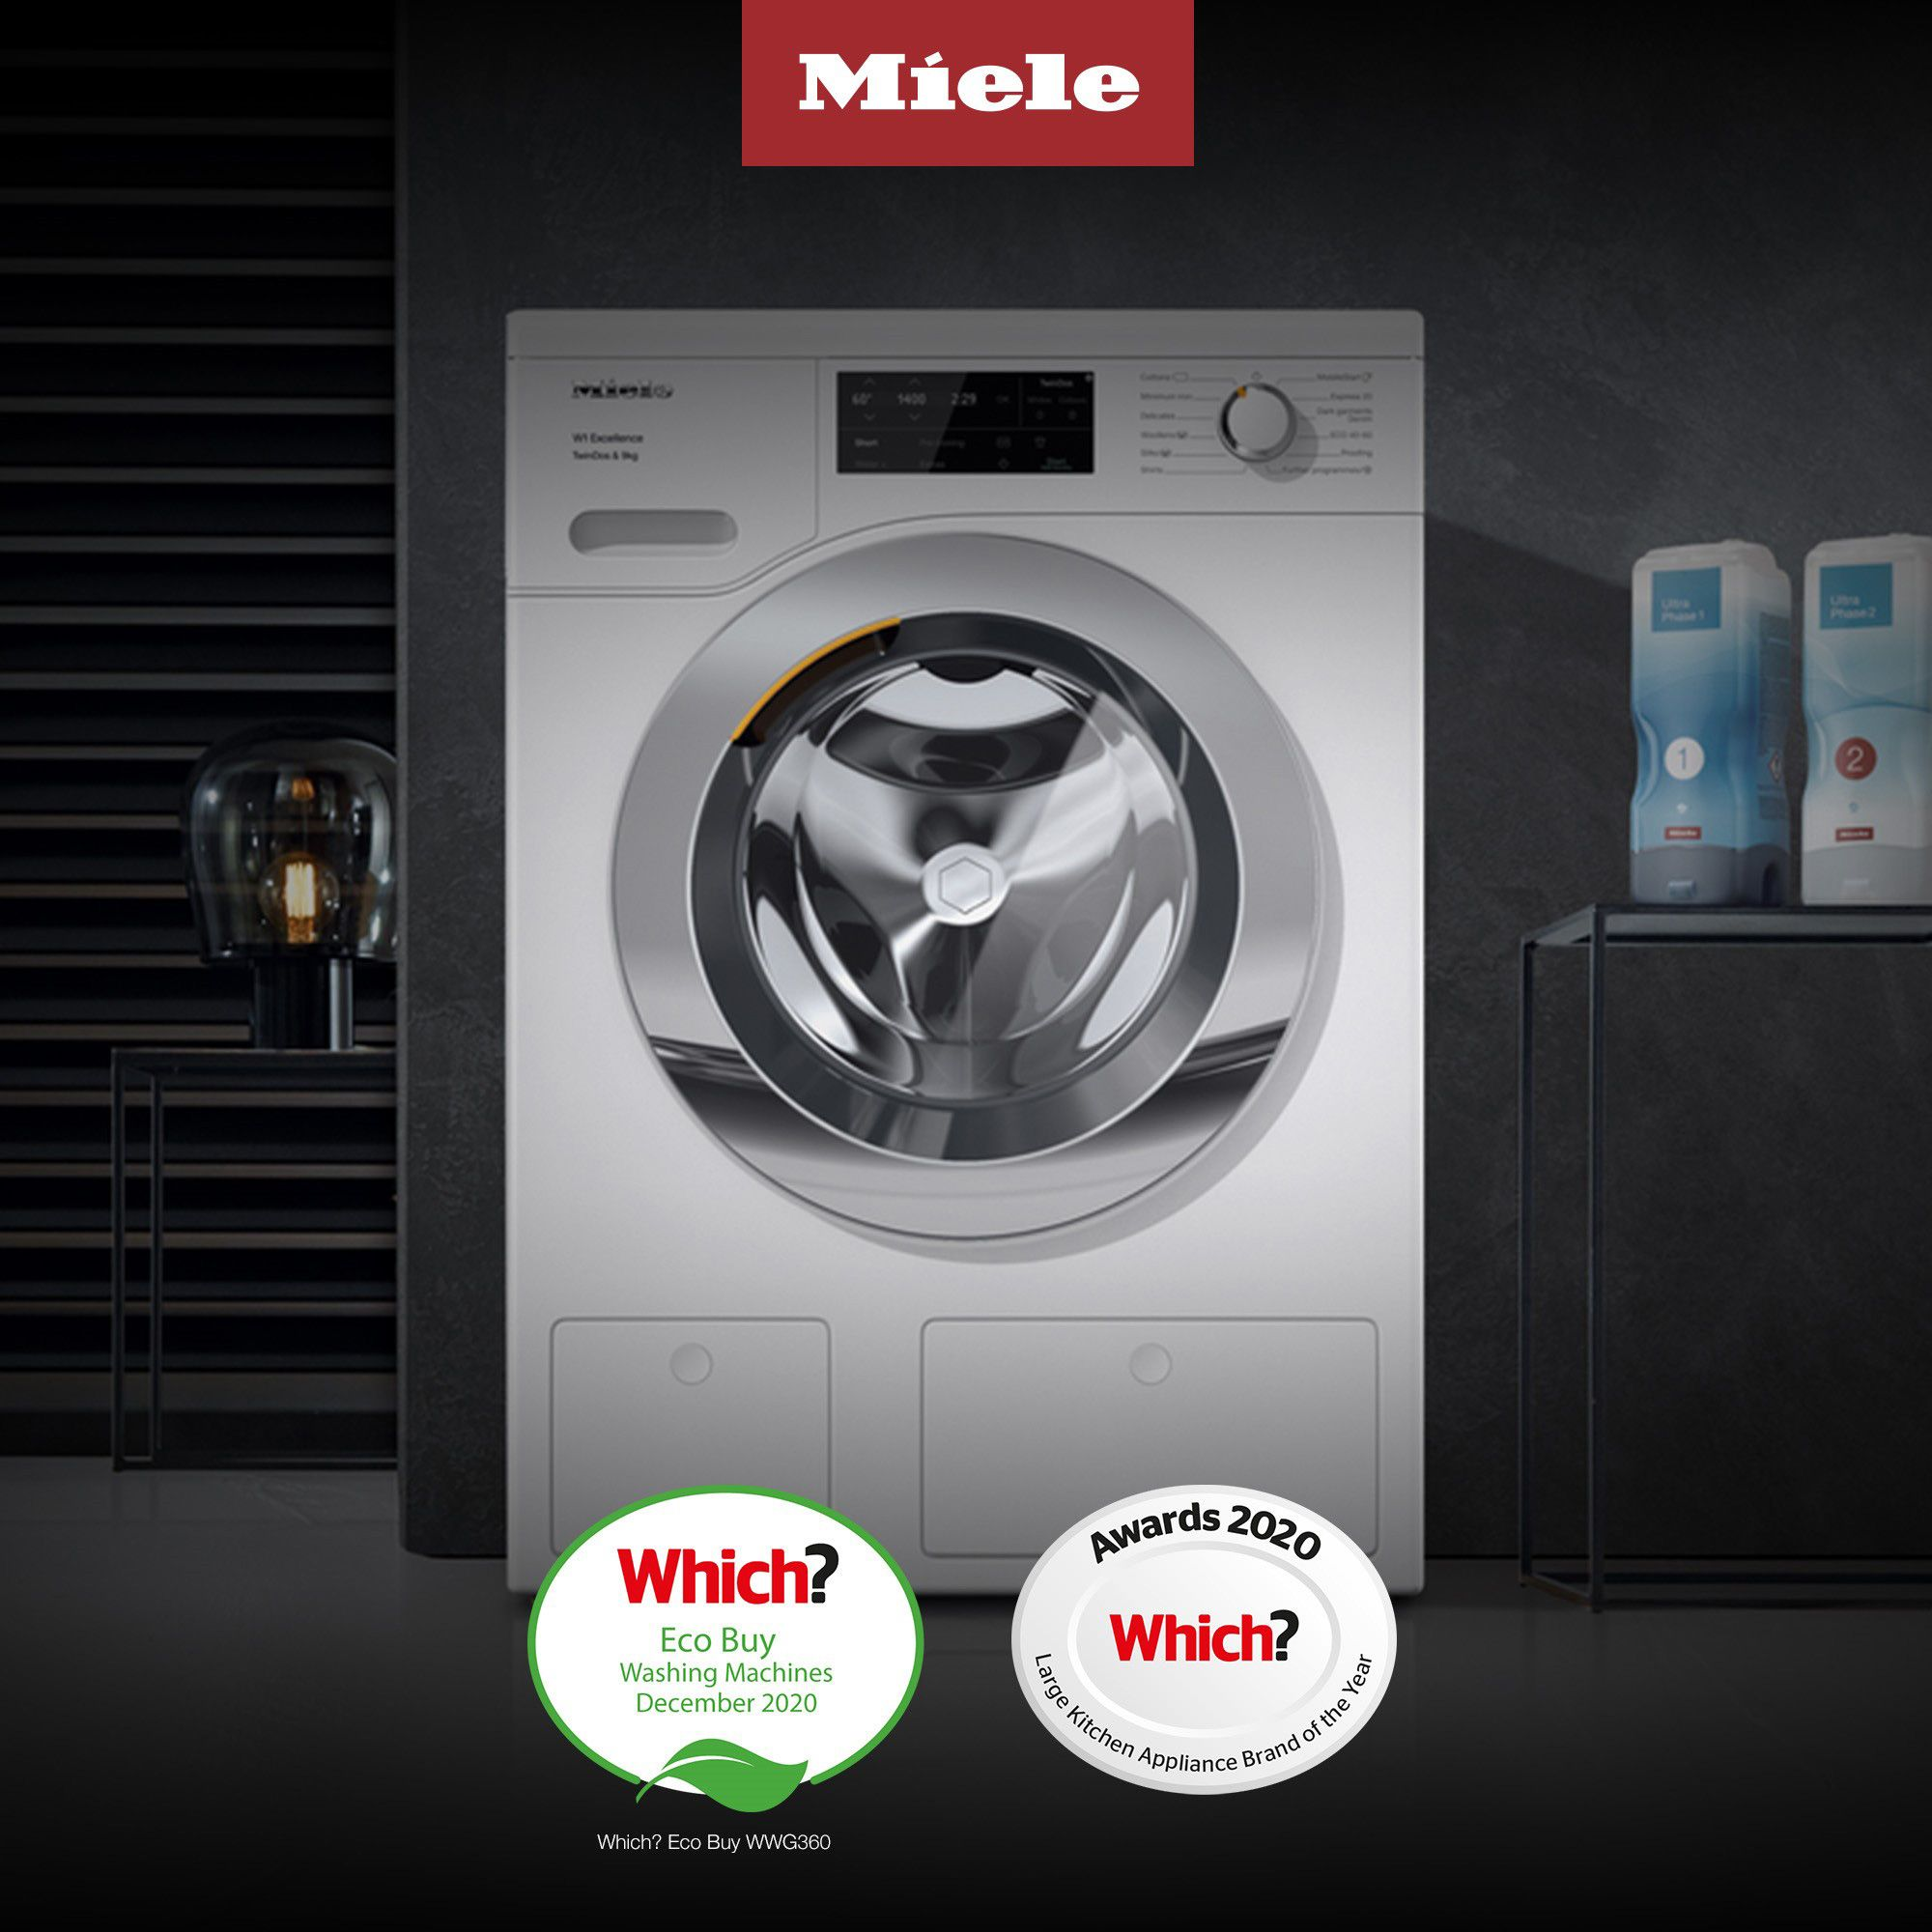 Miele: Obsessed with quality that lasts